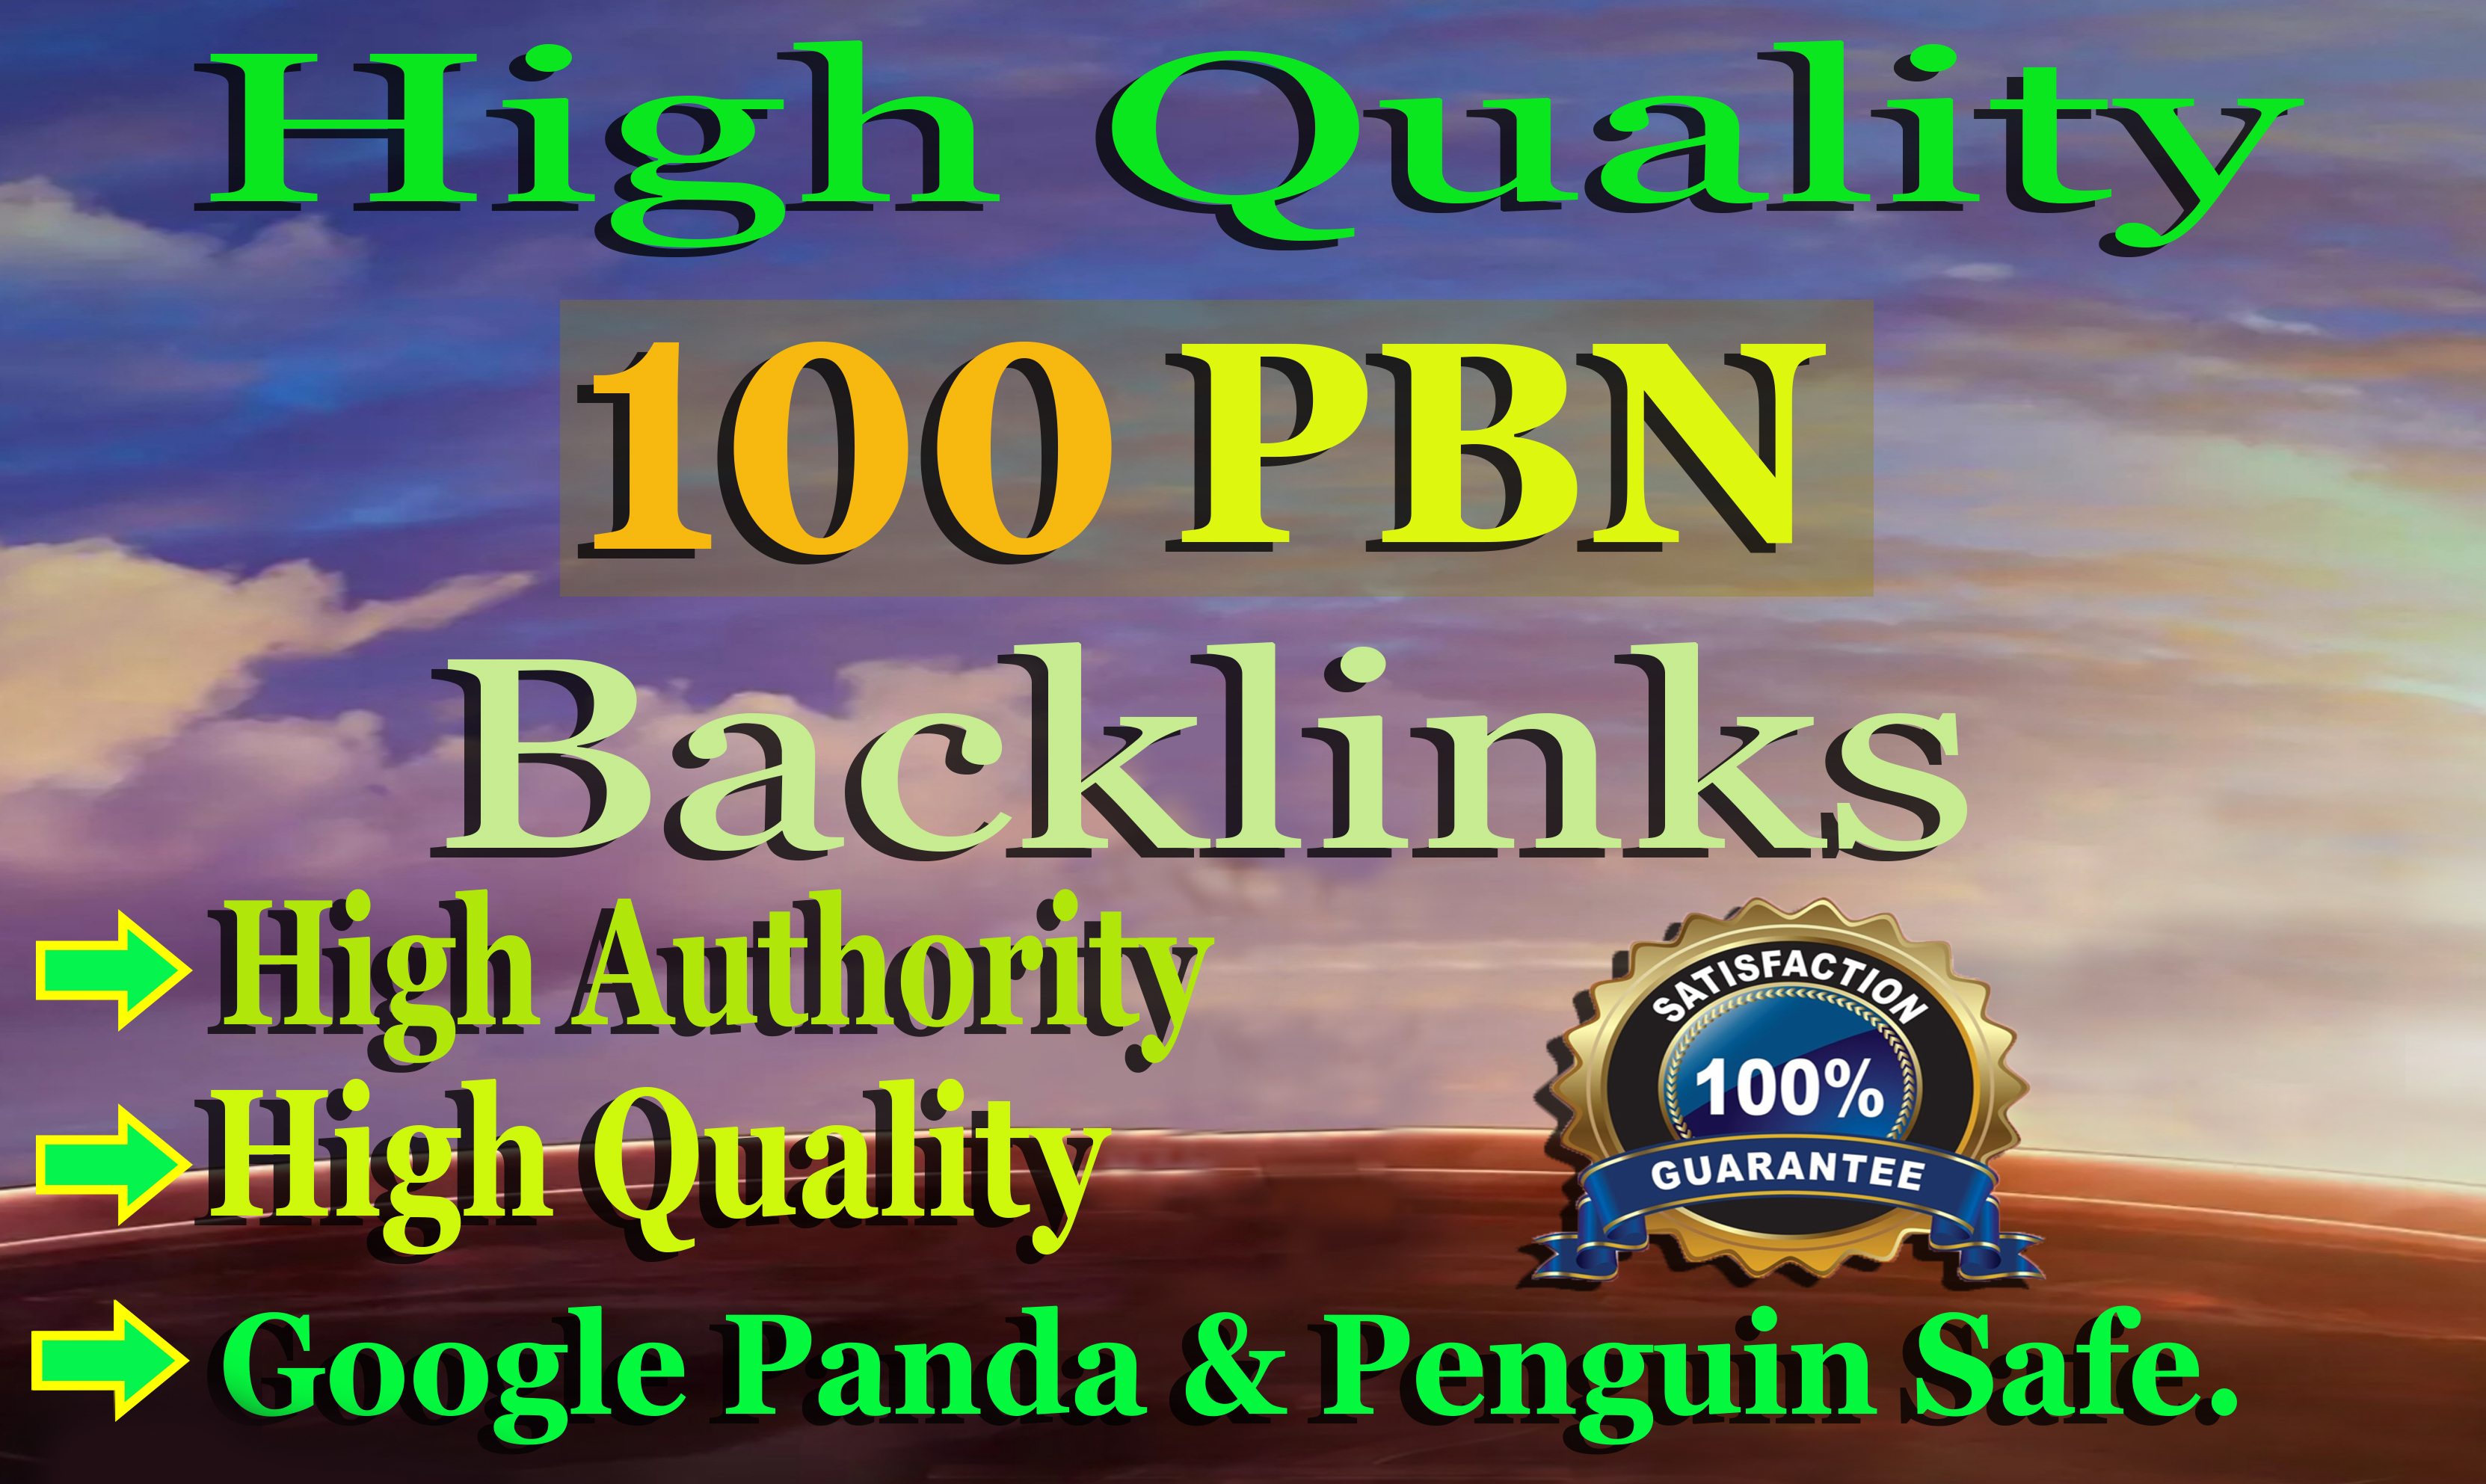 I will 100 PBN Backlinks to Boost your Website